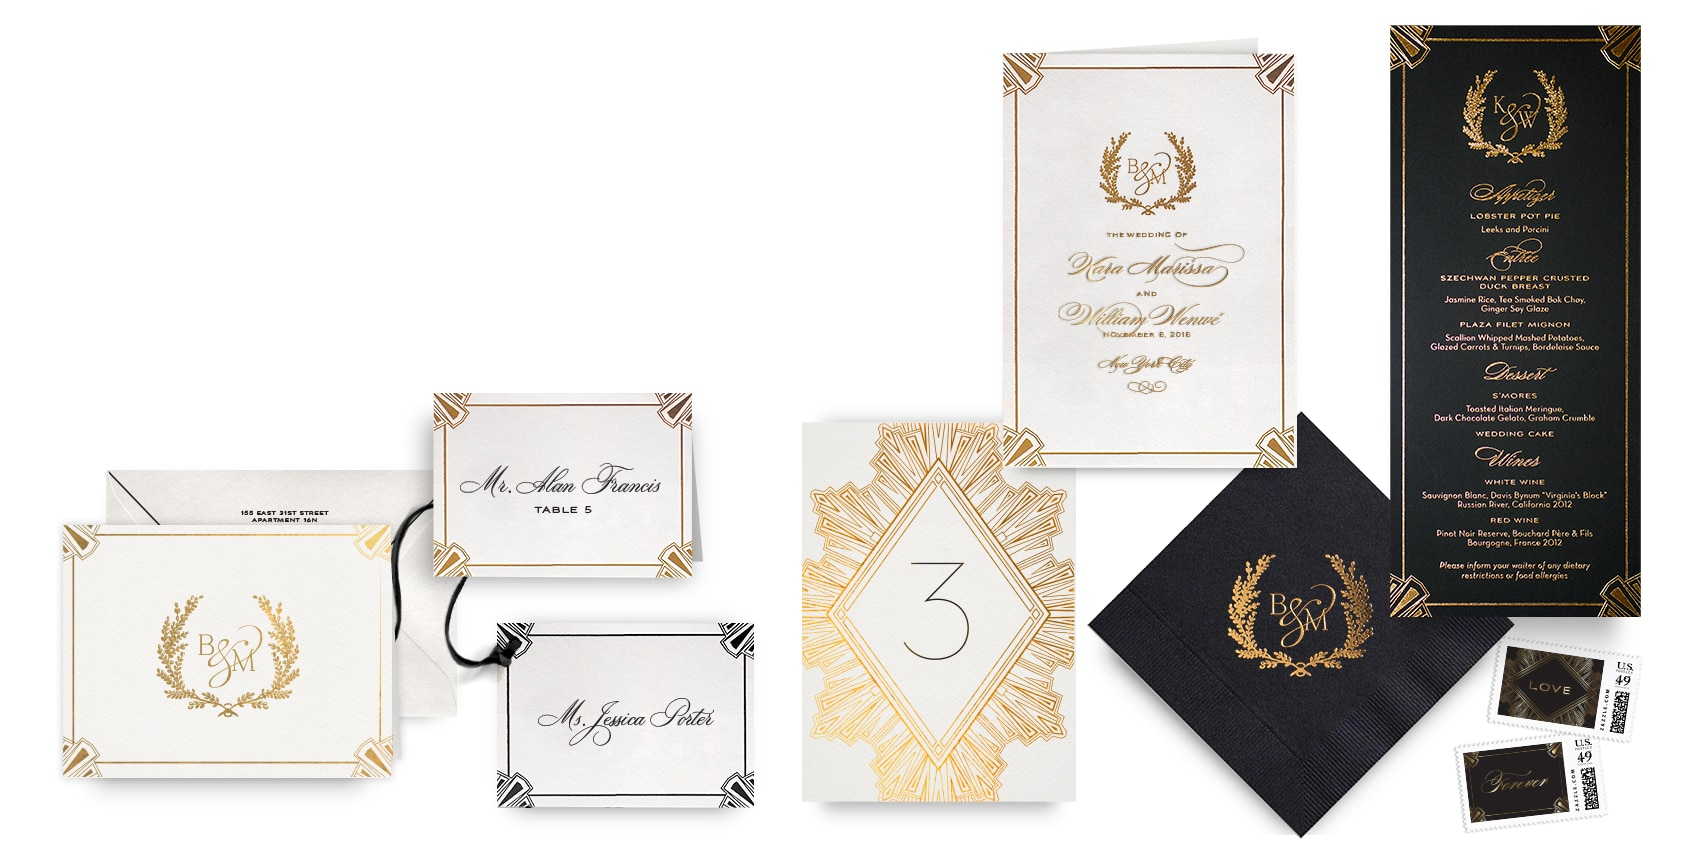 Ornate Deco menus, programs and wedding accessories